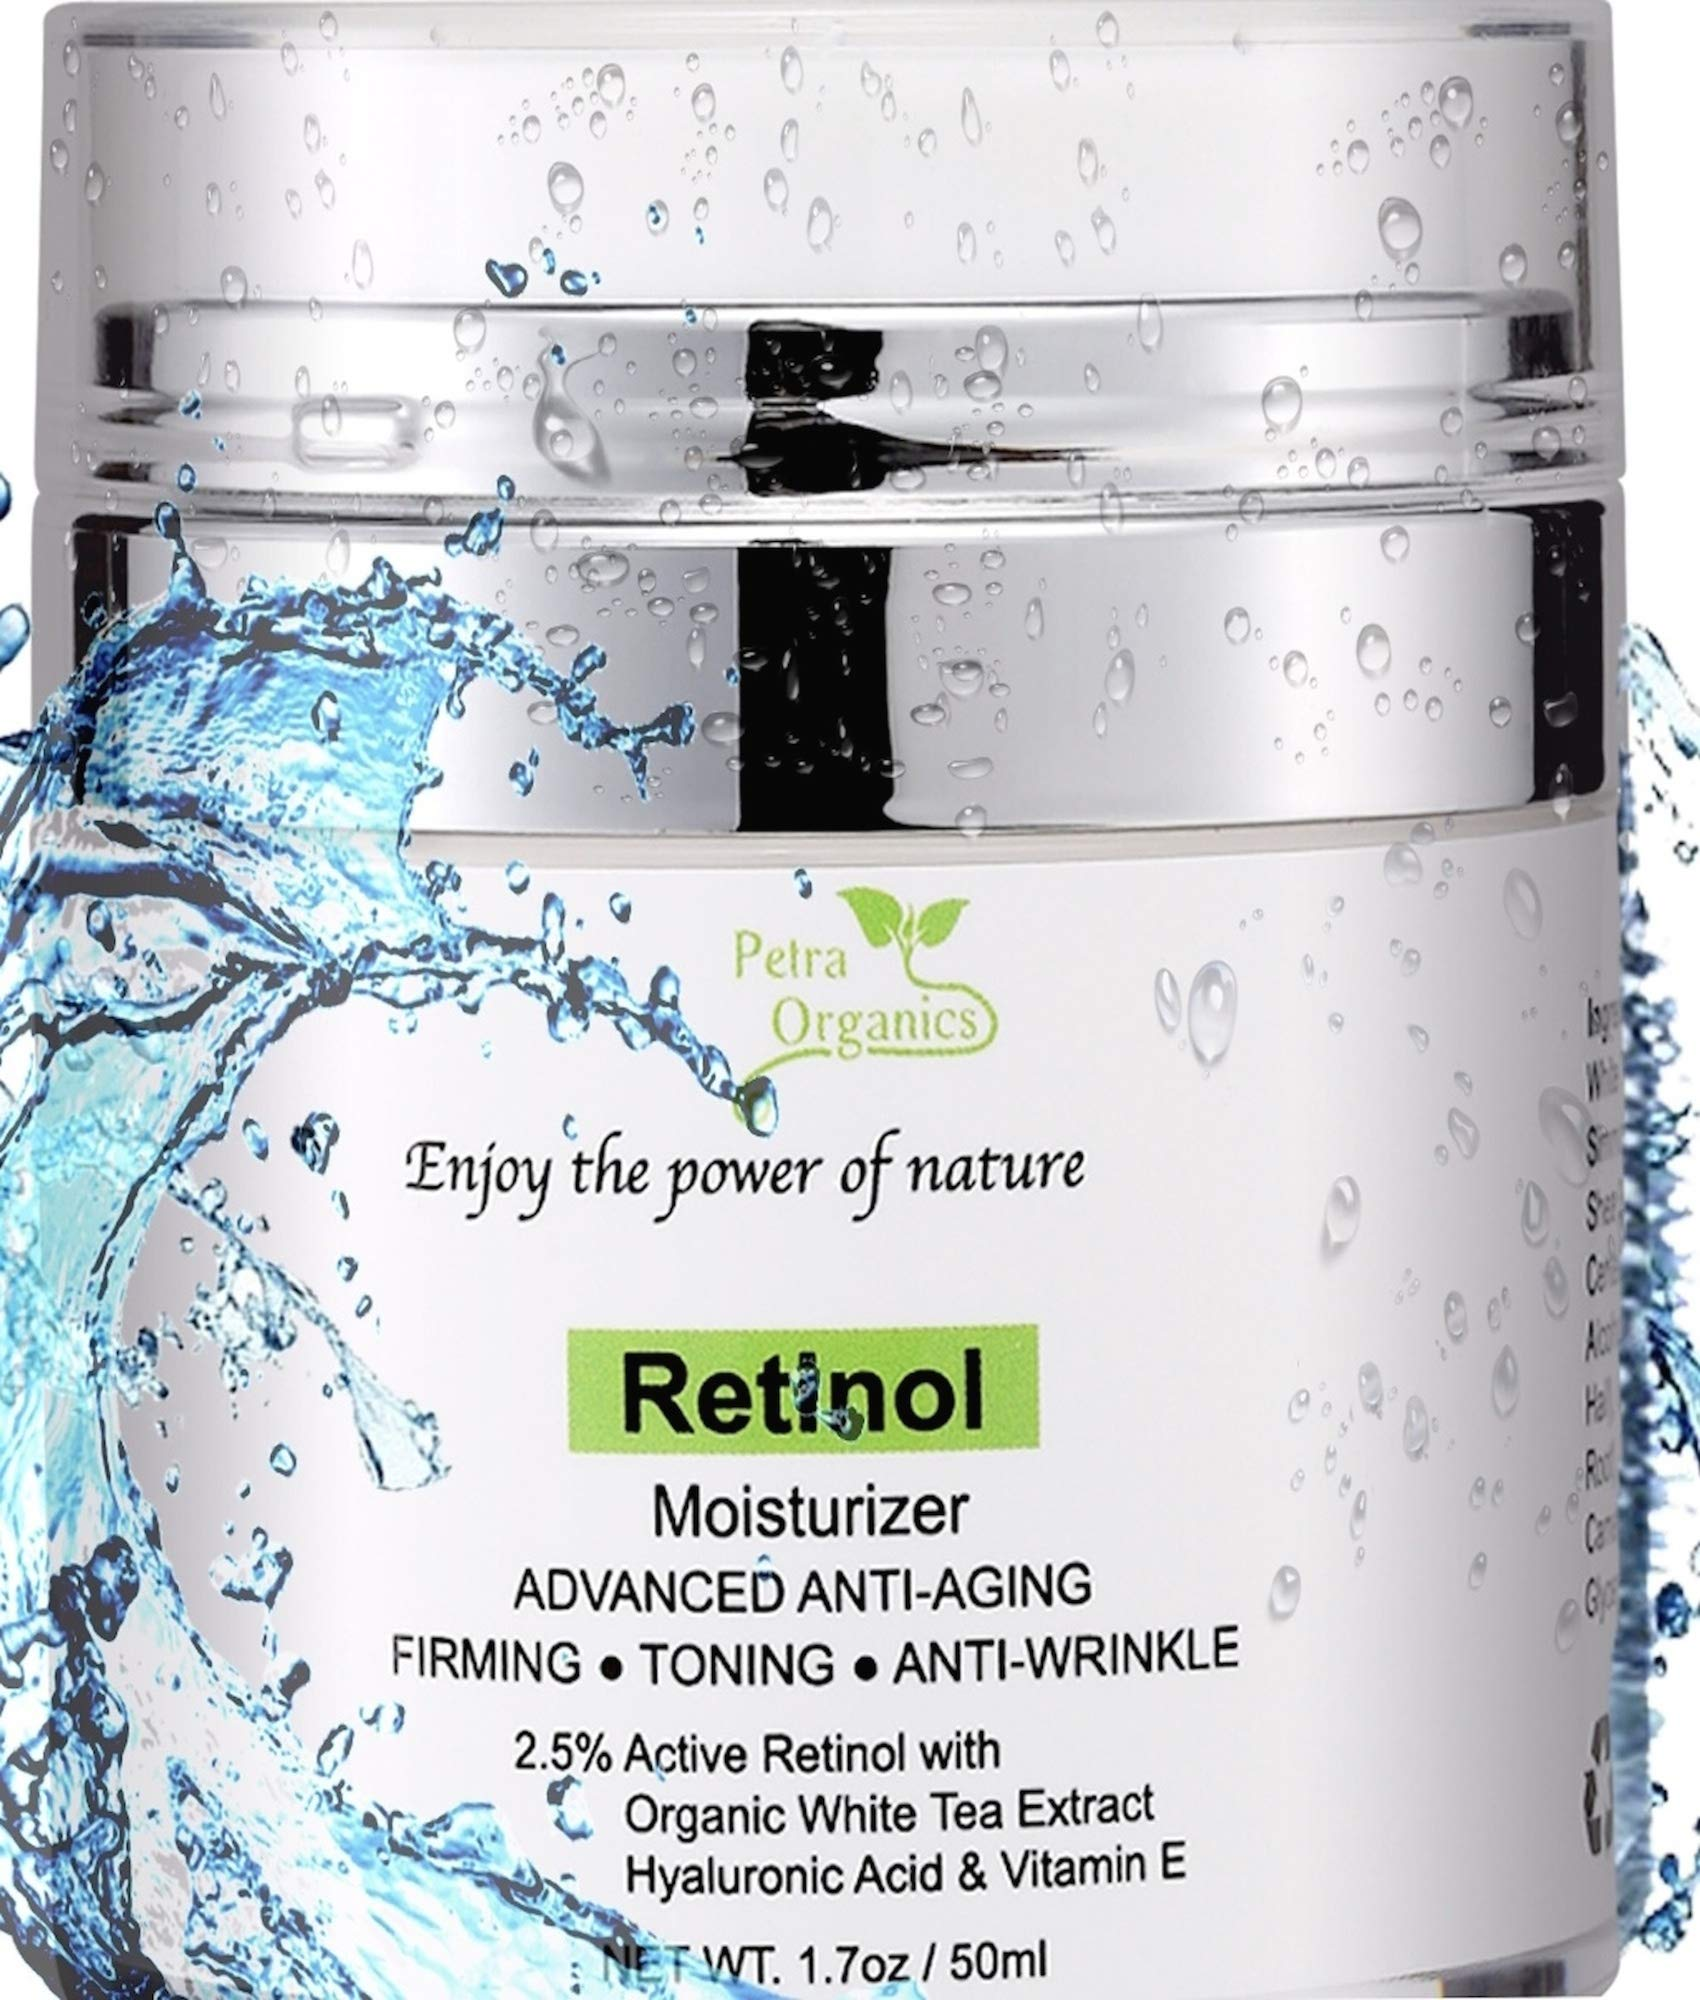 Retinol Cream for Face and Eye Are - with Retinol, Hyaluronic Acid, Shea Butter & Vitamin E - Anti Aging Face Cream - Night Cream Anti Aging - Retinol Moisturizer -1.7oz / 50m